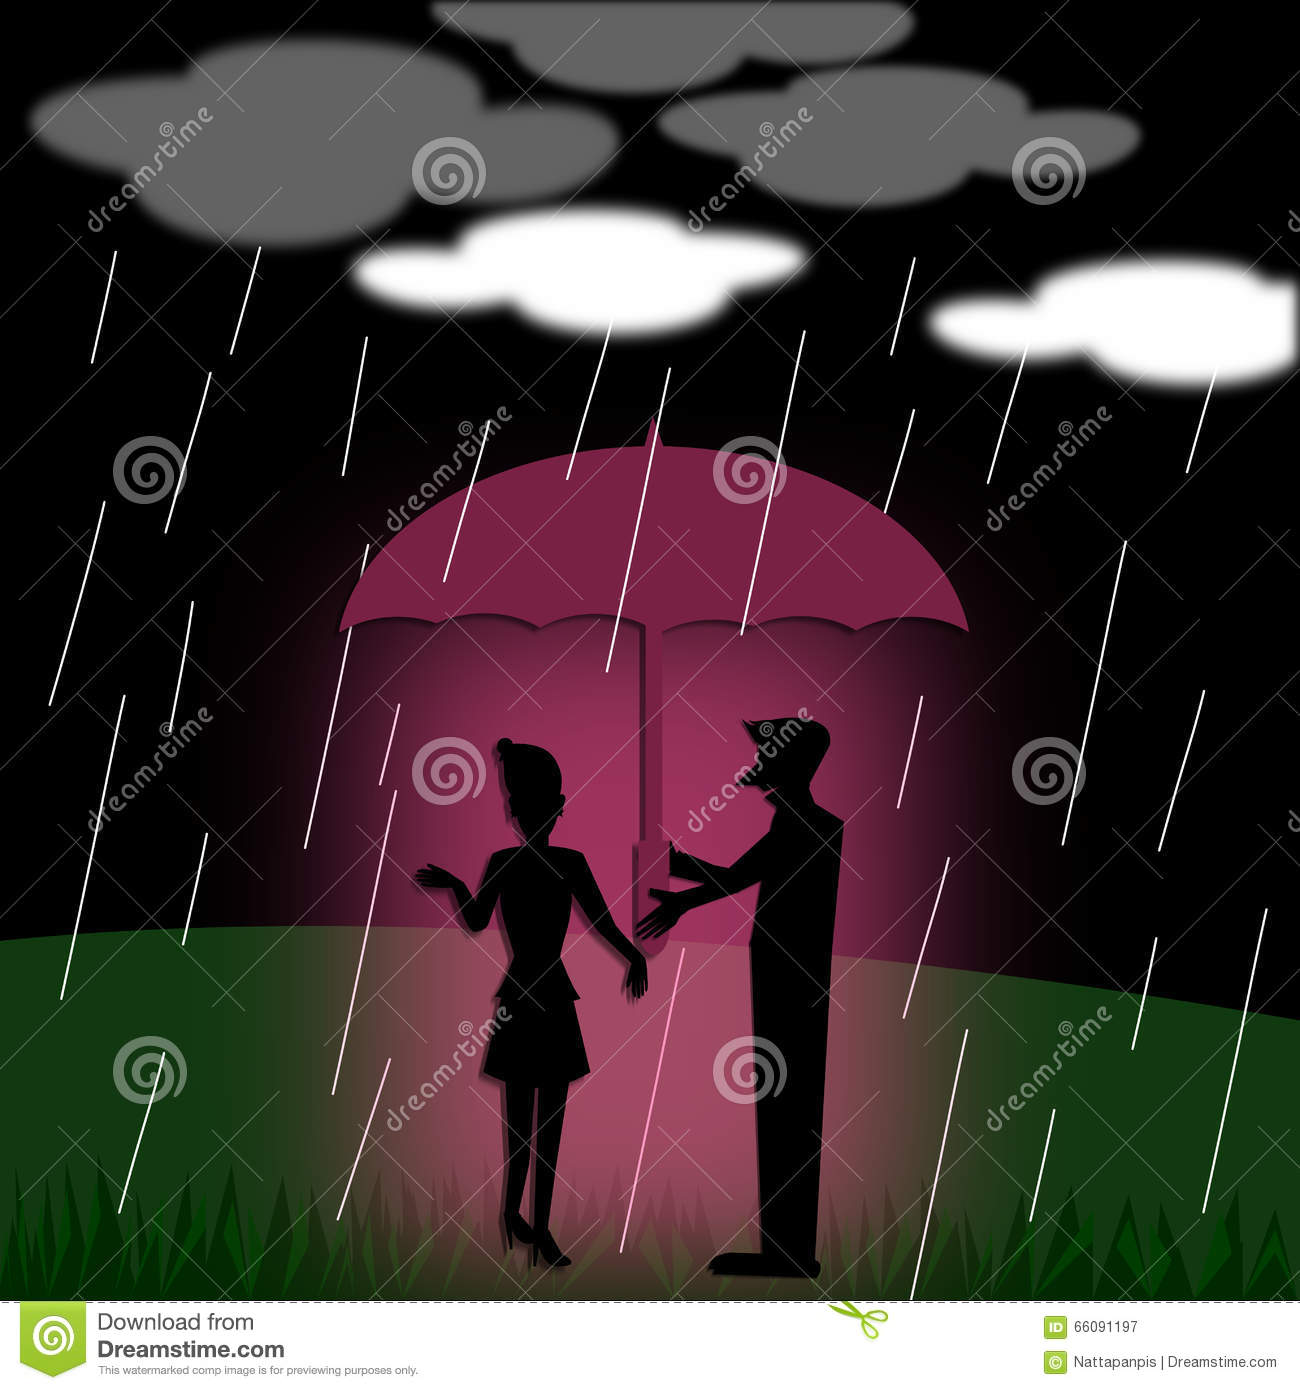 Silhouette Couple Love With Umbrella Standing Under The